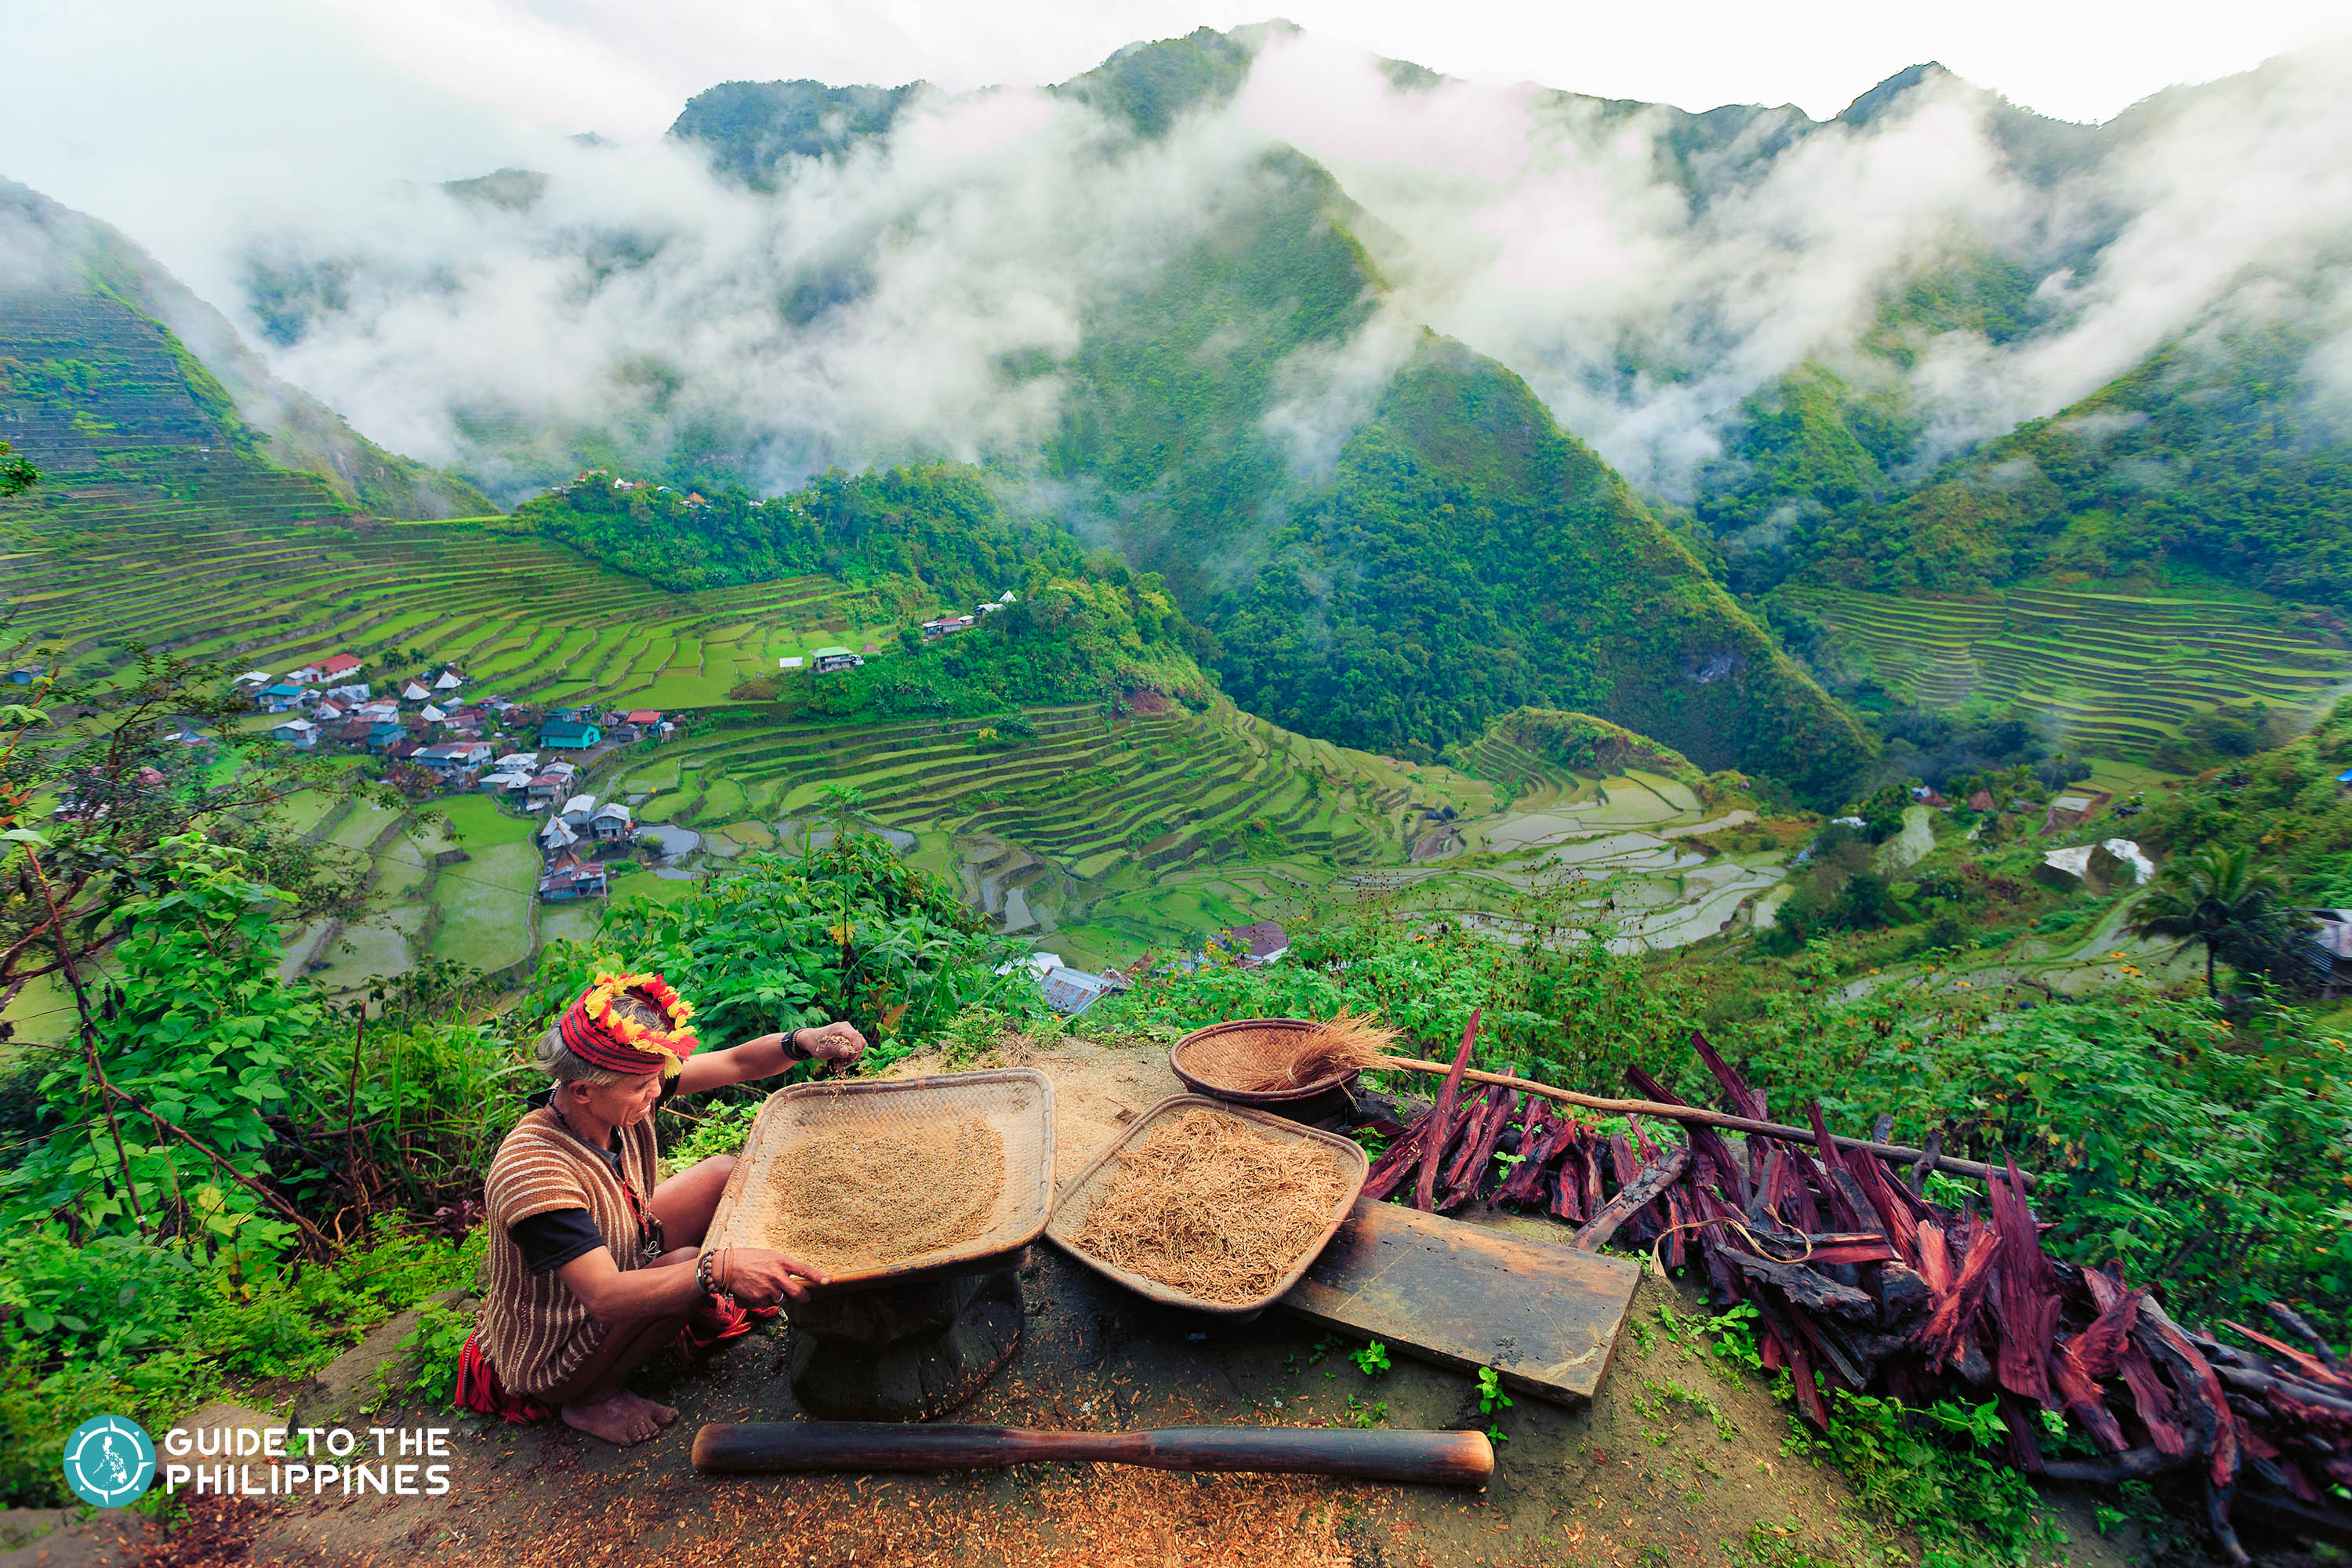 Banaue Travel Guide: Home of Rice Terraces in the Philippines